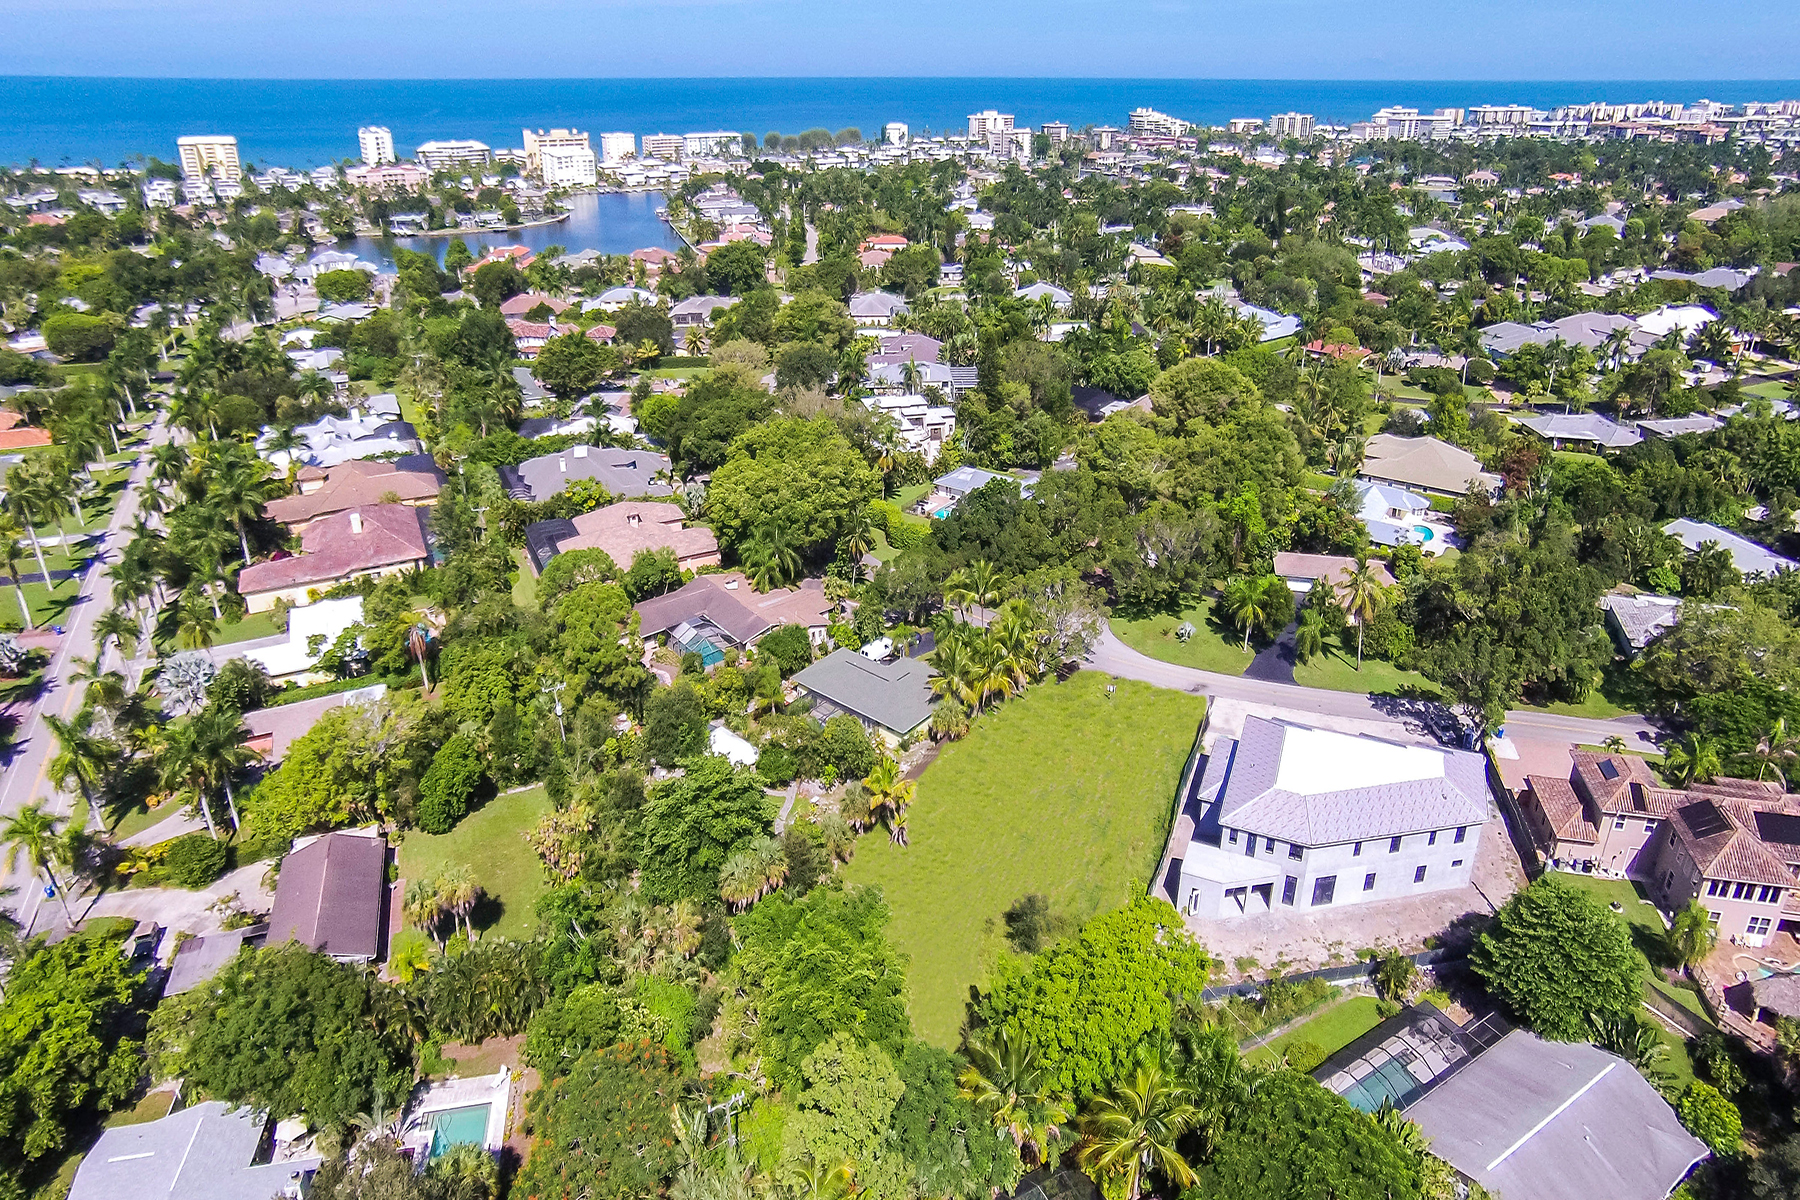 Land for Sale at THE MOORINGS 708 Springline Dr Naples, Florida 34102 United States